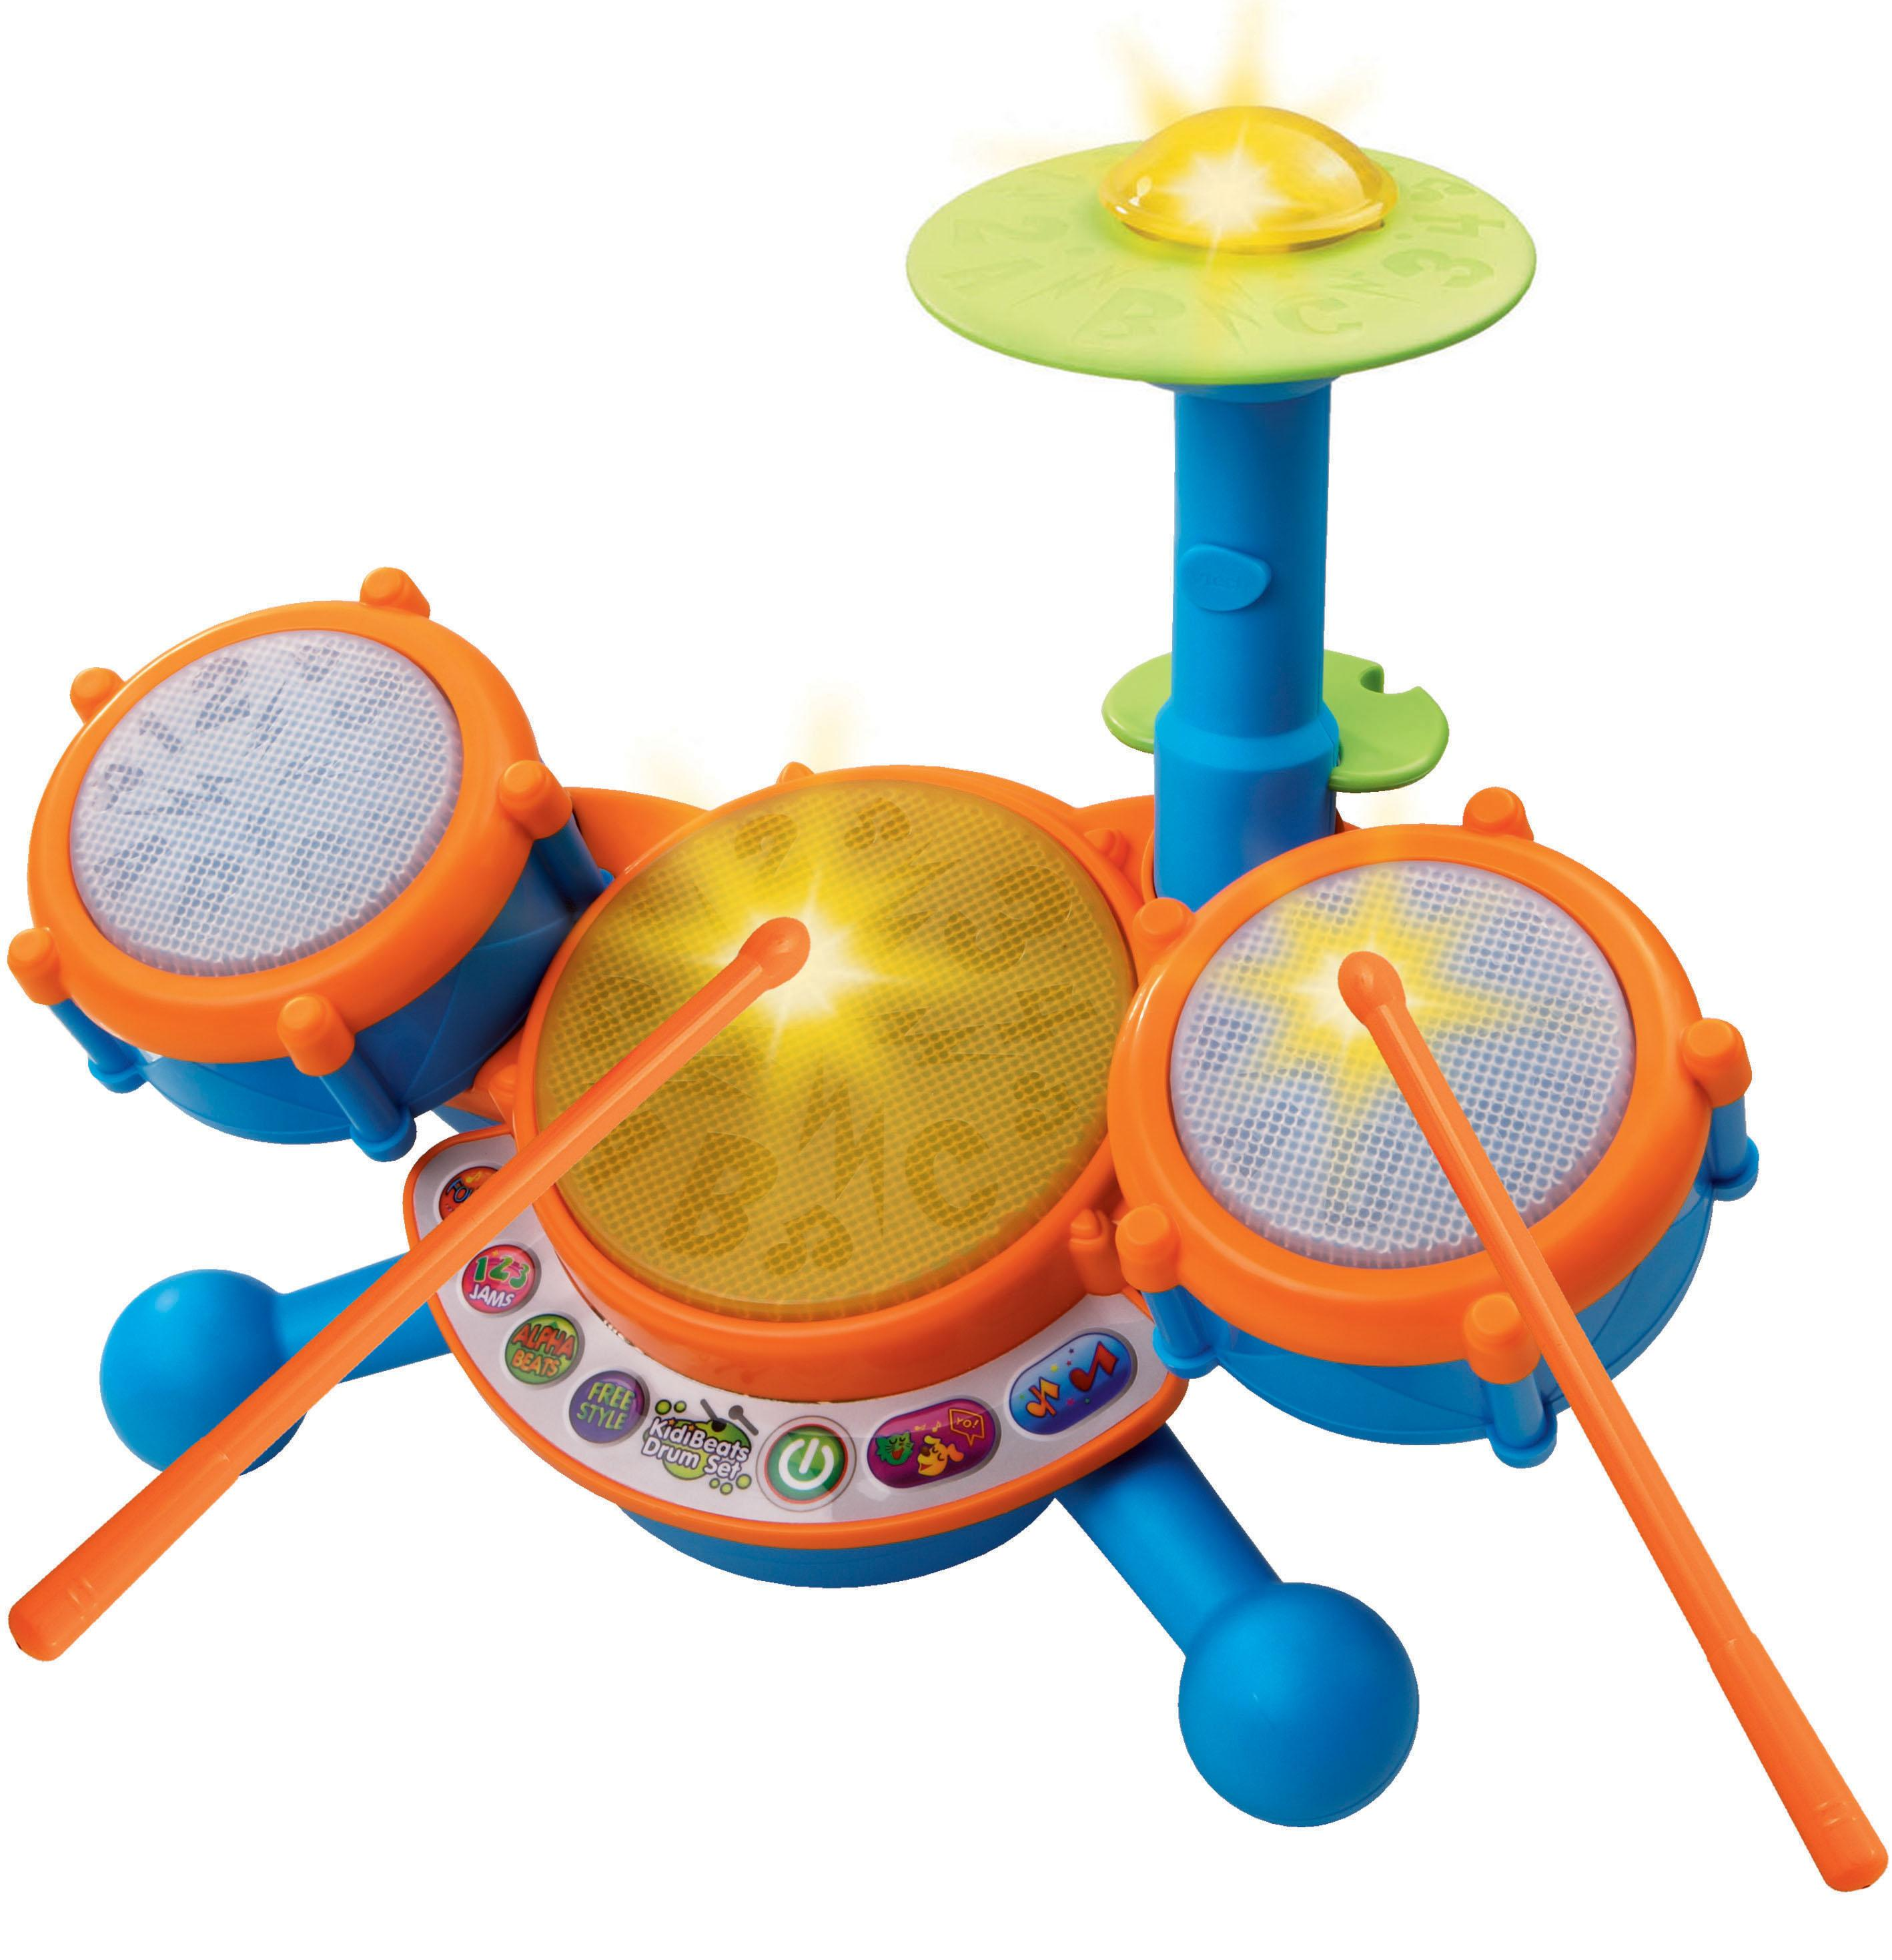 Perfect 1 24 Of 9,880 Results For Toys U0026 Games : Learning U0026 Education : Musical  Instruments Images